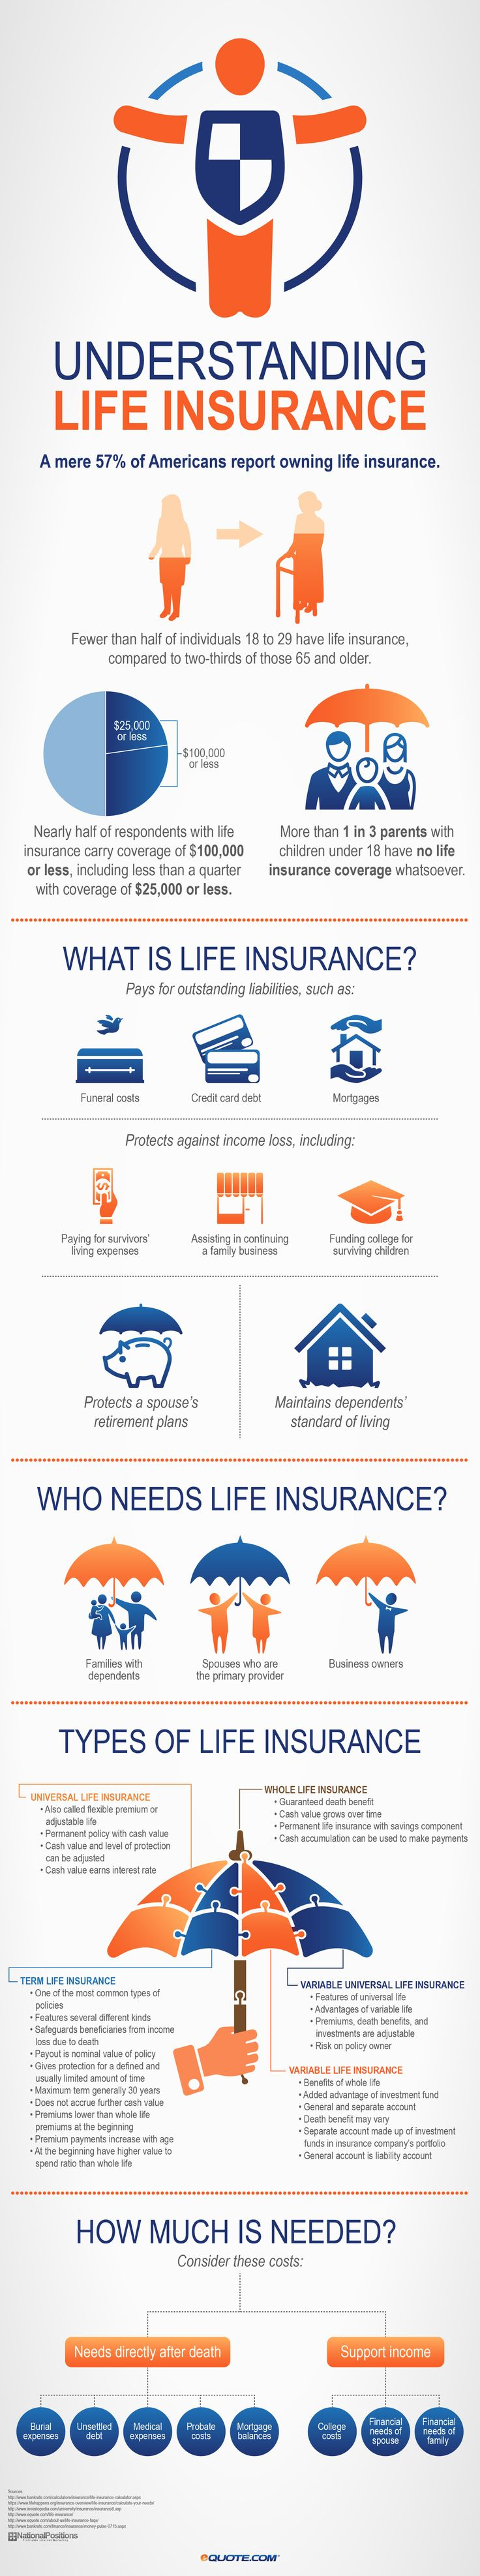 Comparing Life Insurance Quotes Best 25 Compare Life Insurance Ideas On Pinterest  Compare Life